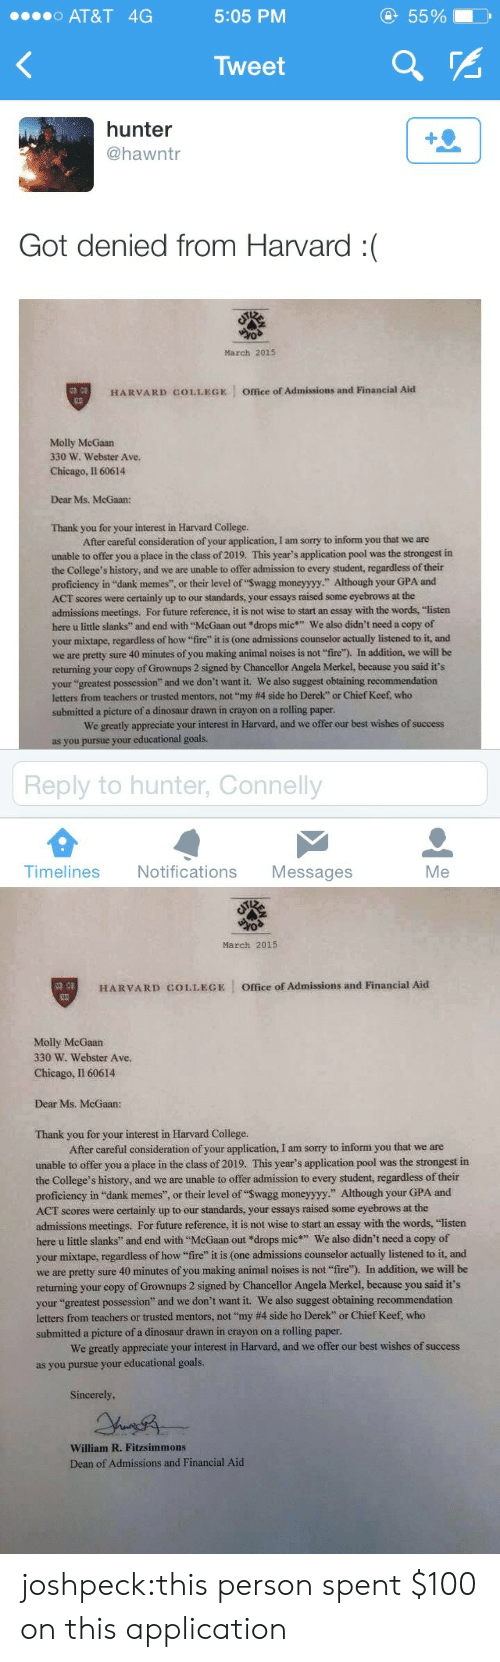 "Anaconda, Chicago, and Chief Keef: o AT&T 4G  5:05 PM  55%  Tweet  hunter  @hawntr  Got denied from Harvard :(  March 2015  HARVARD COLLEGE  Office of Admissions and Financial Aid  Molly McGaan  330 W. Webster Ave.  Chicago, Il 60614  Dear Ms. McGaan:  Thank you for your interest in Harvard College.  After careful consideration of your application, I am sorry to inform you that we are  unable to offer you a place in the class of 2019. This year's application pool was the strongest in  the College's history, and we are unable to offer admission to every student, regardless of their  proficiency in ""dank memes"", or their level of ""Swagg moneyyyy."" Although your GPA and  ACT scores were certainly up to our standards, your essays raised some eyebrows at the  admissions meetings. For future reference, it is not wise to start an essay with the words, ""listen  here u little slanks"" and end with McGaan out *drops mic We also didn't need a copy of  your mixtape, regardless of how fire"" it is (one admissions counselor actually listened to it, and  we are pretty sure 40 minutes of you making animal noises is not ""fire). In addition, we will be  returning your copy of Grownups 2 signed by Chancellor Angela Merkel, because you said it's  your ""greatest possess  letters from teachers or trusted mentors, not ""my #4 side ho Derek"" or Chief Keef who  submitted a picture of a dinosaur drawn in crayon on a rolling paper  ion"" and we don't want it. We also suggest obtaining recommendation  We greatly appreciate your interest in Harvard, and we offer our best wishes of success  as you  r educational goals.  Reply to hunter, Connelly  Timelines Notifications Messages  Me   March 2015  缚,  HARVARD COLLEGE Office of Admissions and Financial Aid  Molly McGaan  330 W. Webster Ave  Chicago, I1 60614  Dear Ms. McGaan:  Thank you for your interest in Harvard College  After careful consideration of your application, I am sorry to inform you that we are  unable to offer you a place in the class of 2019. This year's application pool was the strongest in  the College's history, and we are unable to offer admission to every student, regardless of their  proficiency in ""dank memes"", or their level of ""Swagg moneyyyy"" Although your GPA and  ACT scores were certainly up to our standards, your essays raised some eyebrows at the  admissions meetings. For future reference, it is not wise to start an essay with the words, ""listen  here u little slanks and end with ""McGaan out drops mic We also didn't need a copy of  your mixtape, regardless of how fire"" it is (one admissions counselor actually listened to it, and  we are pretty sure 40 minutes of you making animal noises is not ""fire). In addition, we will be  returning your copy of Grownups 2 signed by Chancellor Angela Merkel, because you said it's  your ""greatest possession"" and we don't want it. We also suggest obtaining recommendation  letters frome teachers or trusted mentors, not""my #4 side ho Derek', or Chief Keef, who  submitted a picture of a dinosaur drawn in crayon on a rolling paper.  We greatly appreciate your interest in Harvard, and we offer our best wishes of success  as you pursue your educational goals.  Sincerely  William R. Fitzsimmons  Dean of Admissions and Financial Aid joshpeck:this person spent $100 on this application"